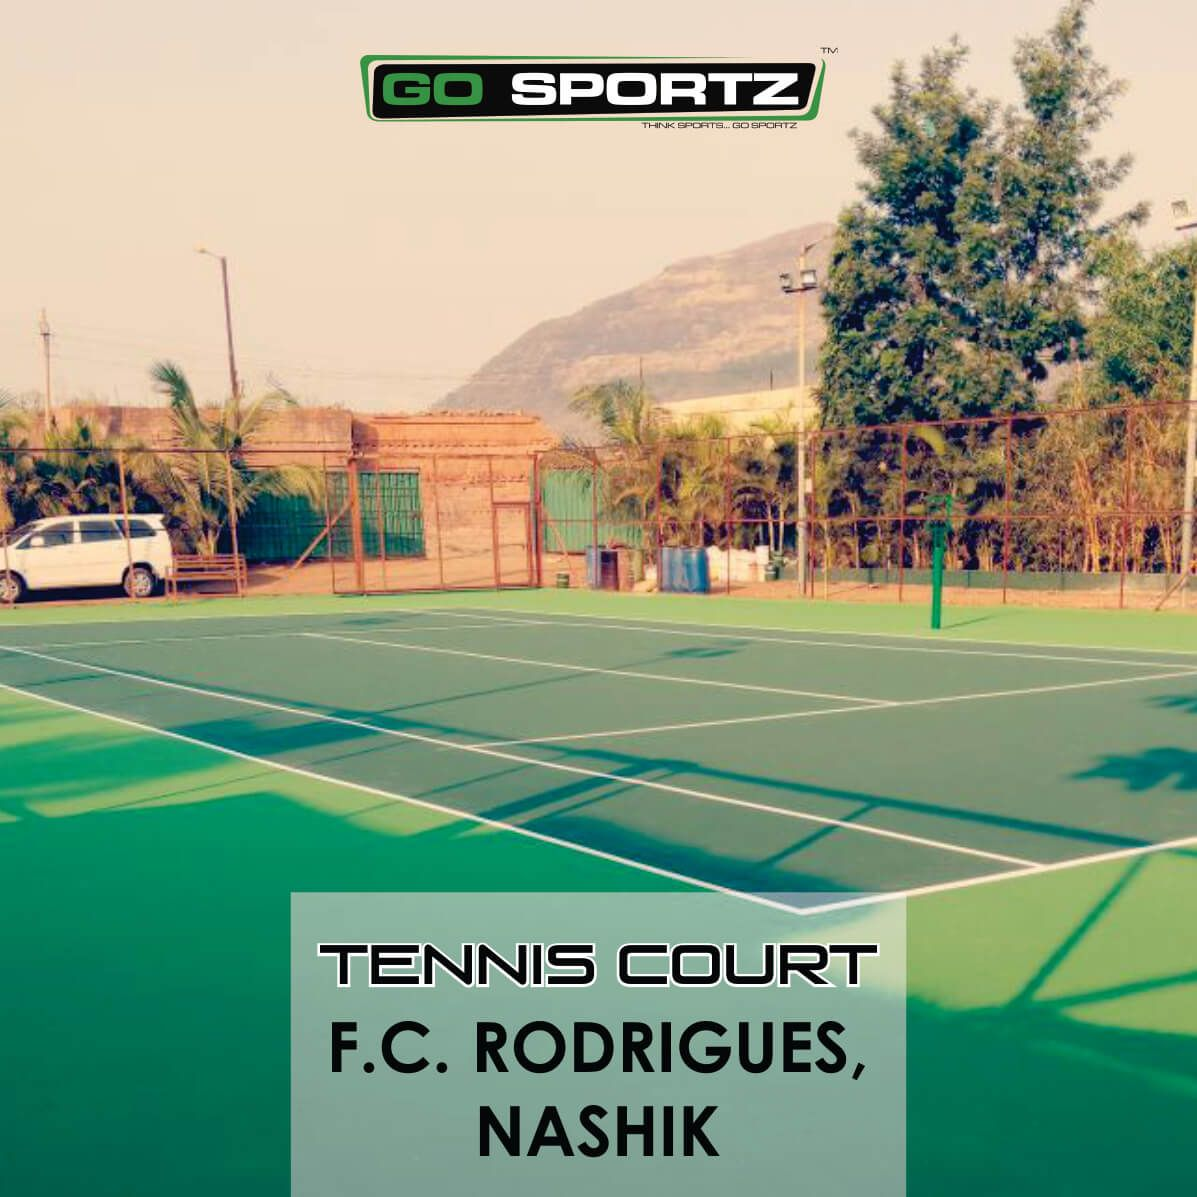 We Are A Brand For The Best Sports Surfaces Whether Professional Or Recreational Facilities Go Sportz For A Quality Fun Sports Tennis Court Sports Activities